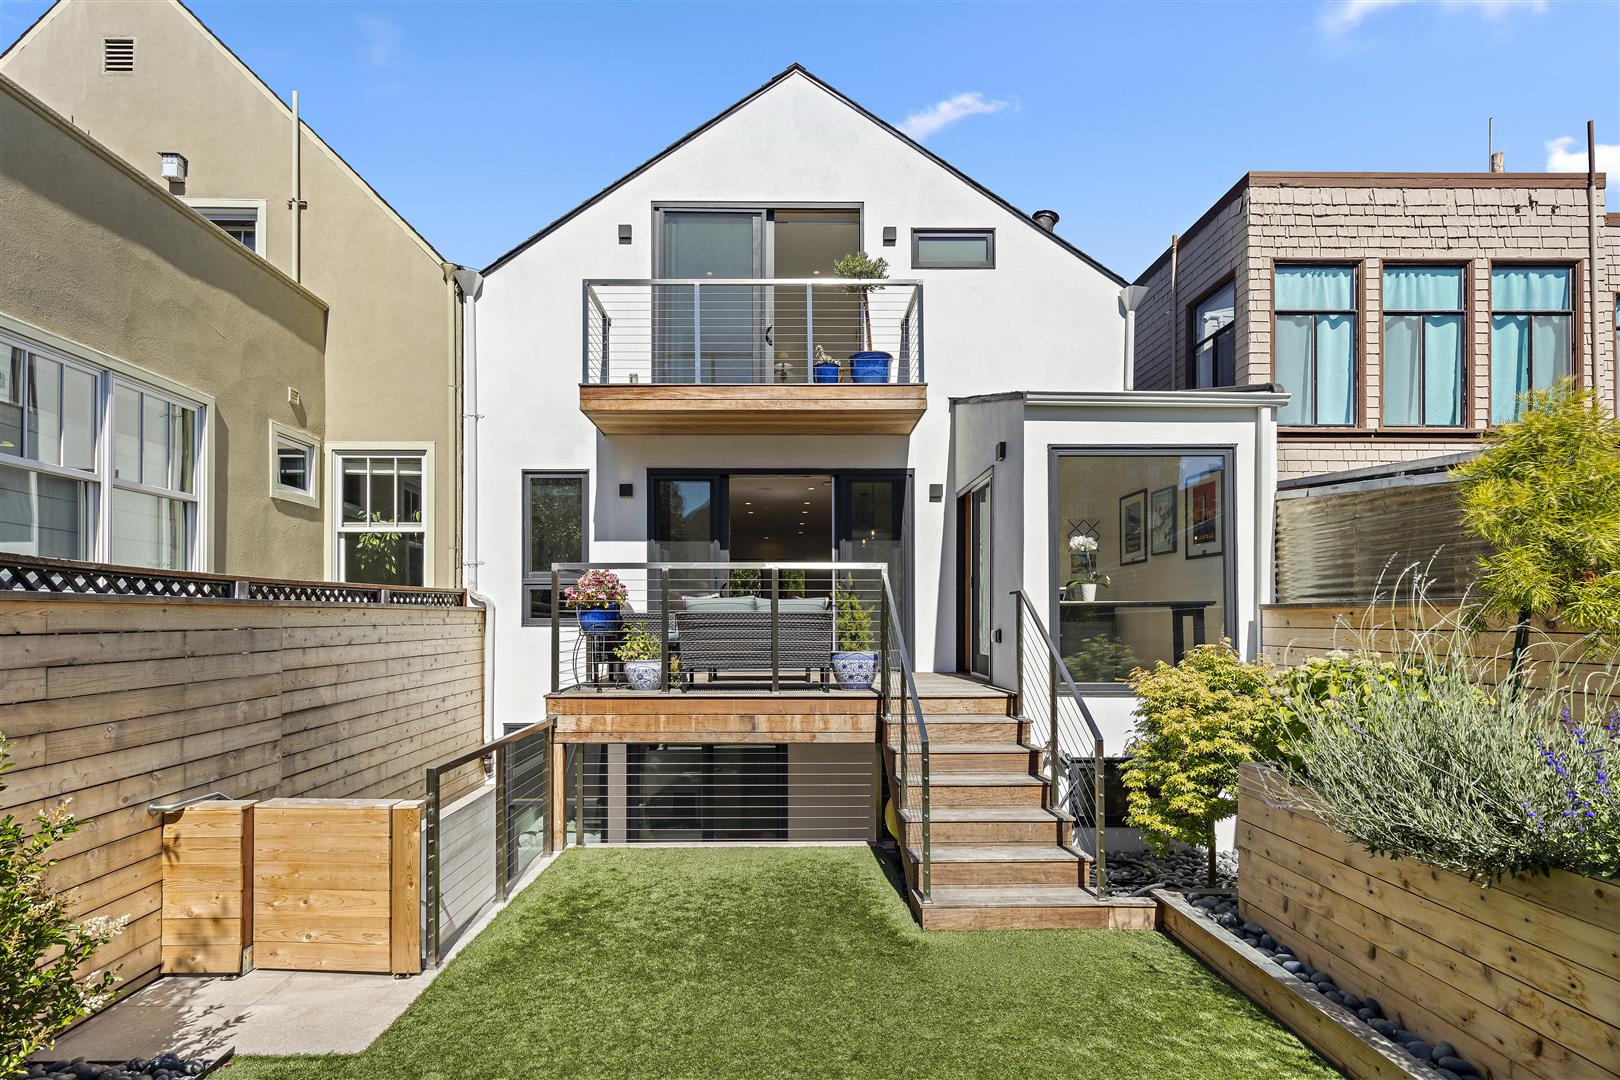 11-MLS-375-30th-Ave-San-Francisco34.jpg #11